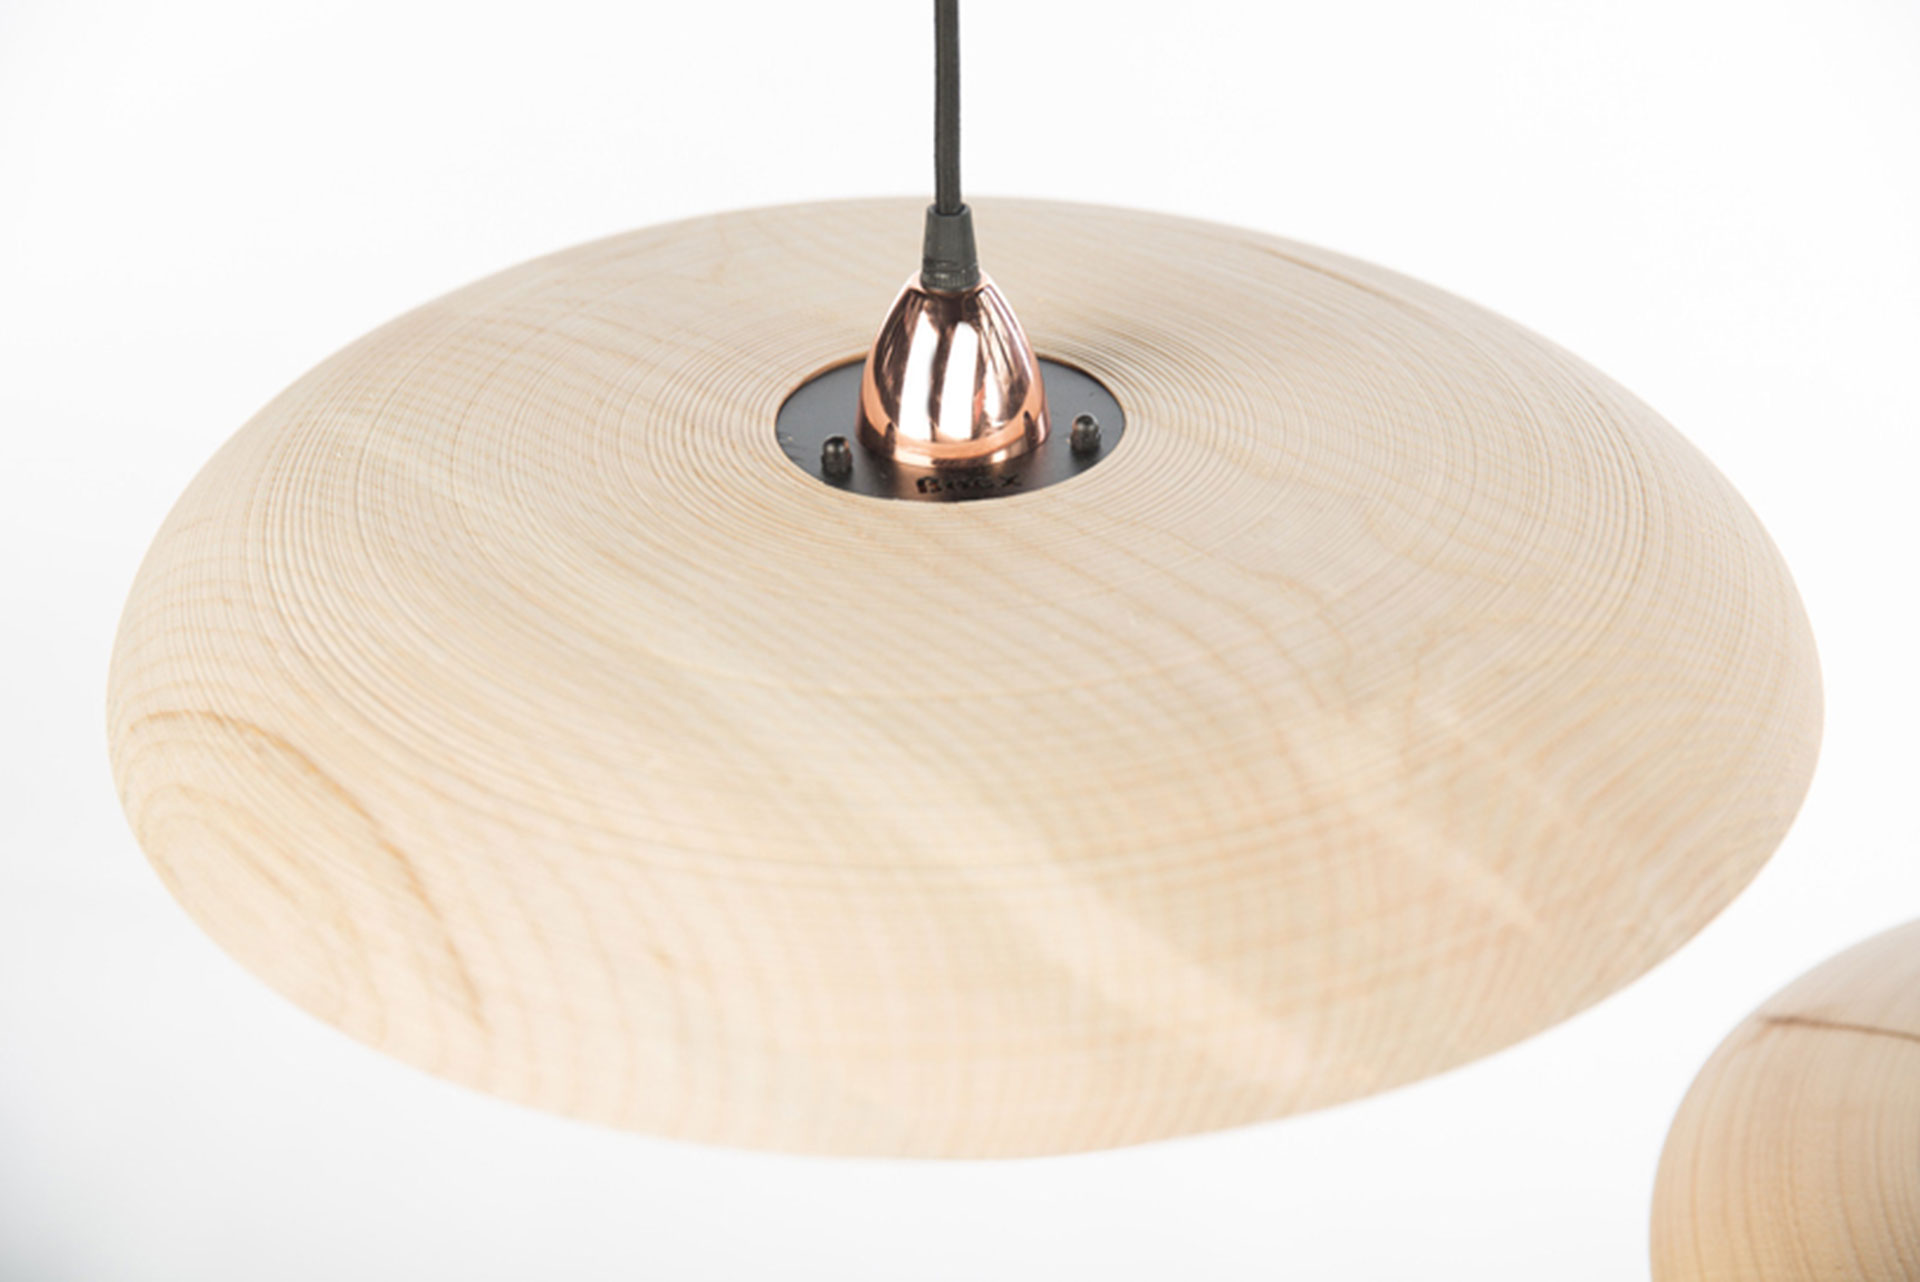 Detail showing copper pendant fixture of hand turned timber light